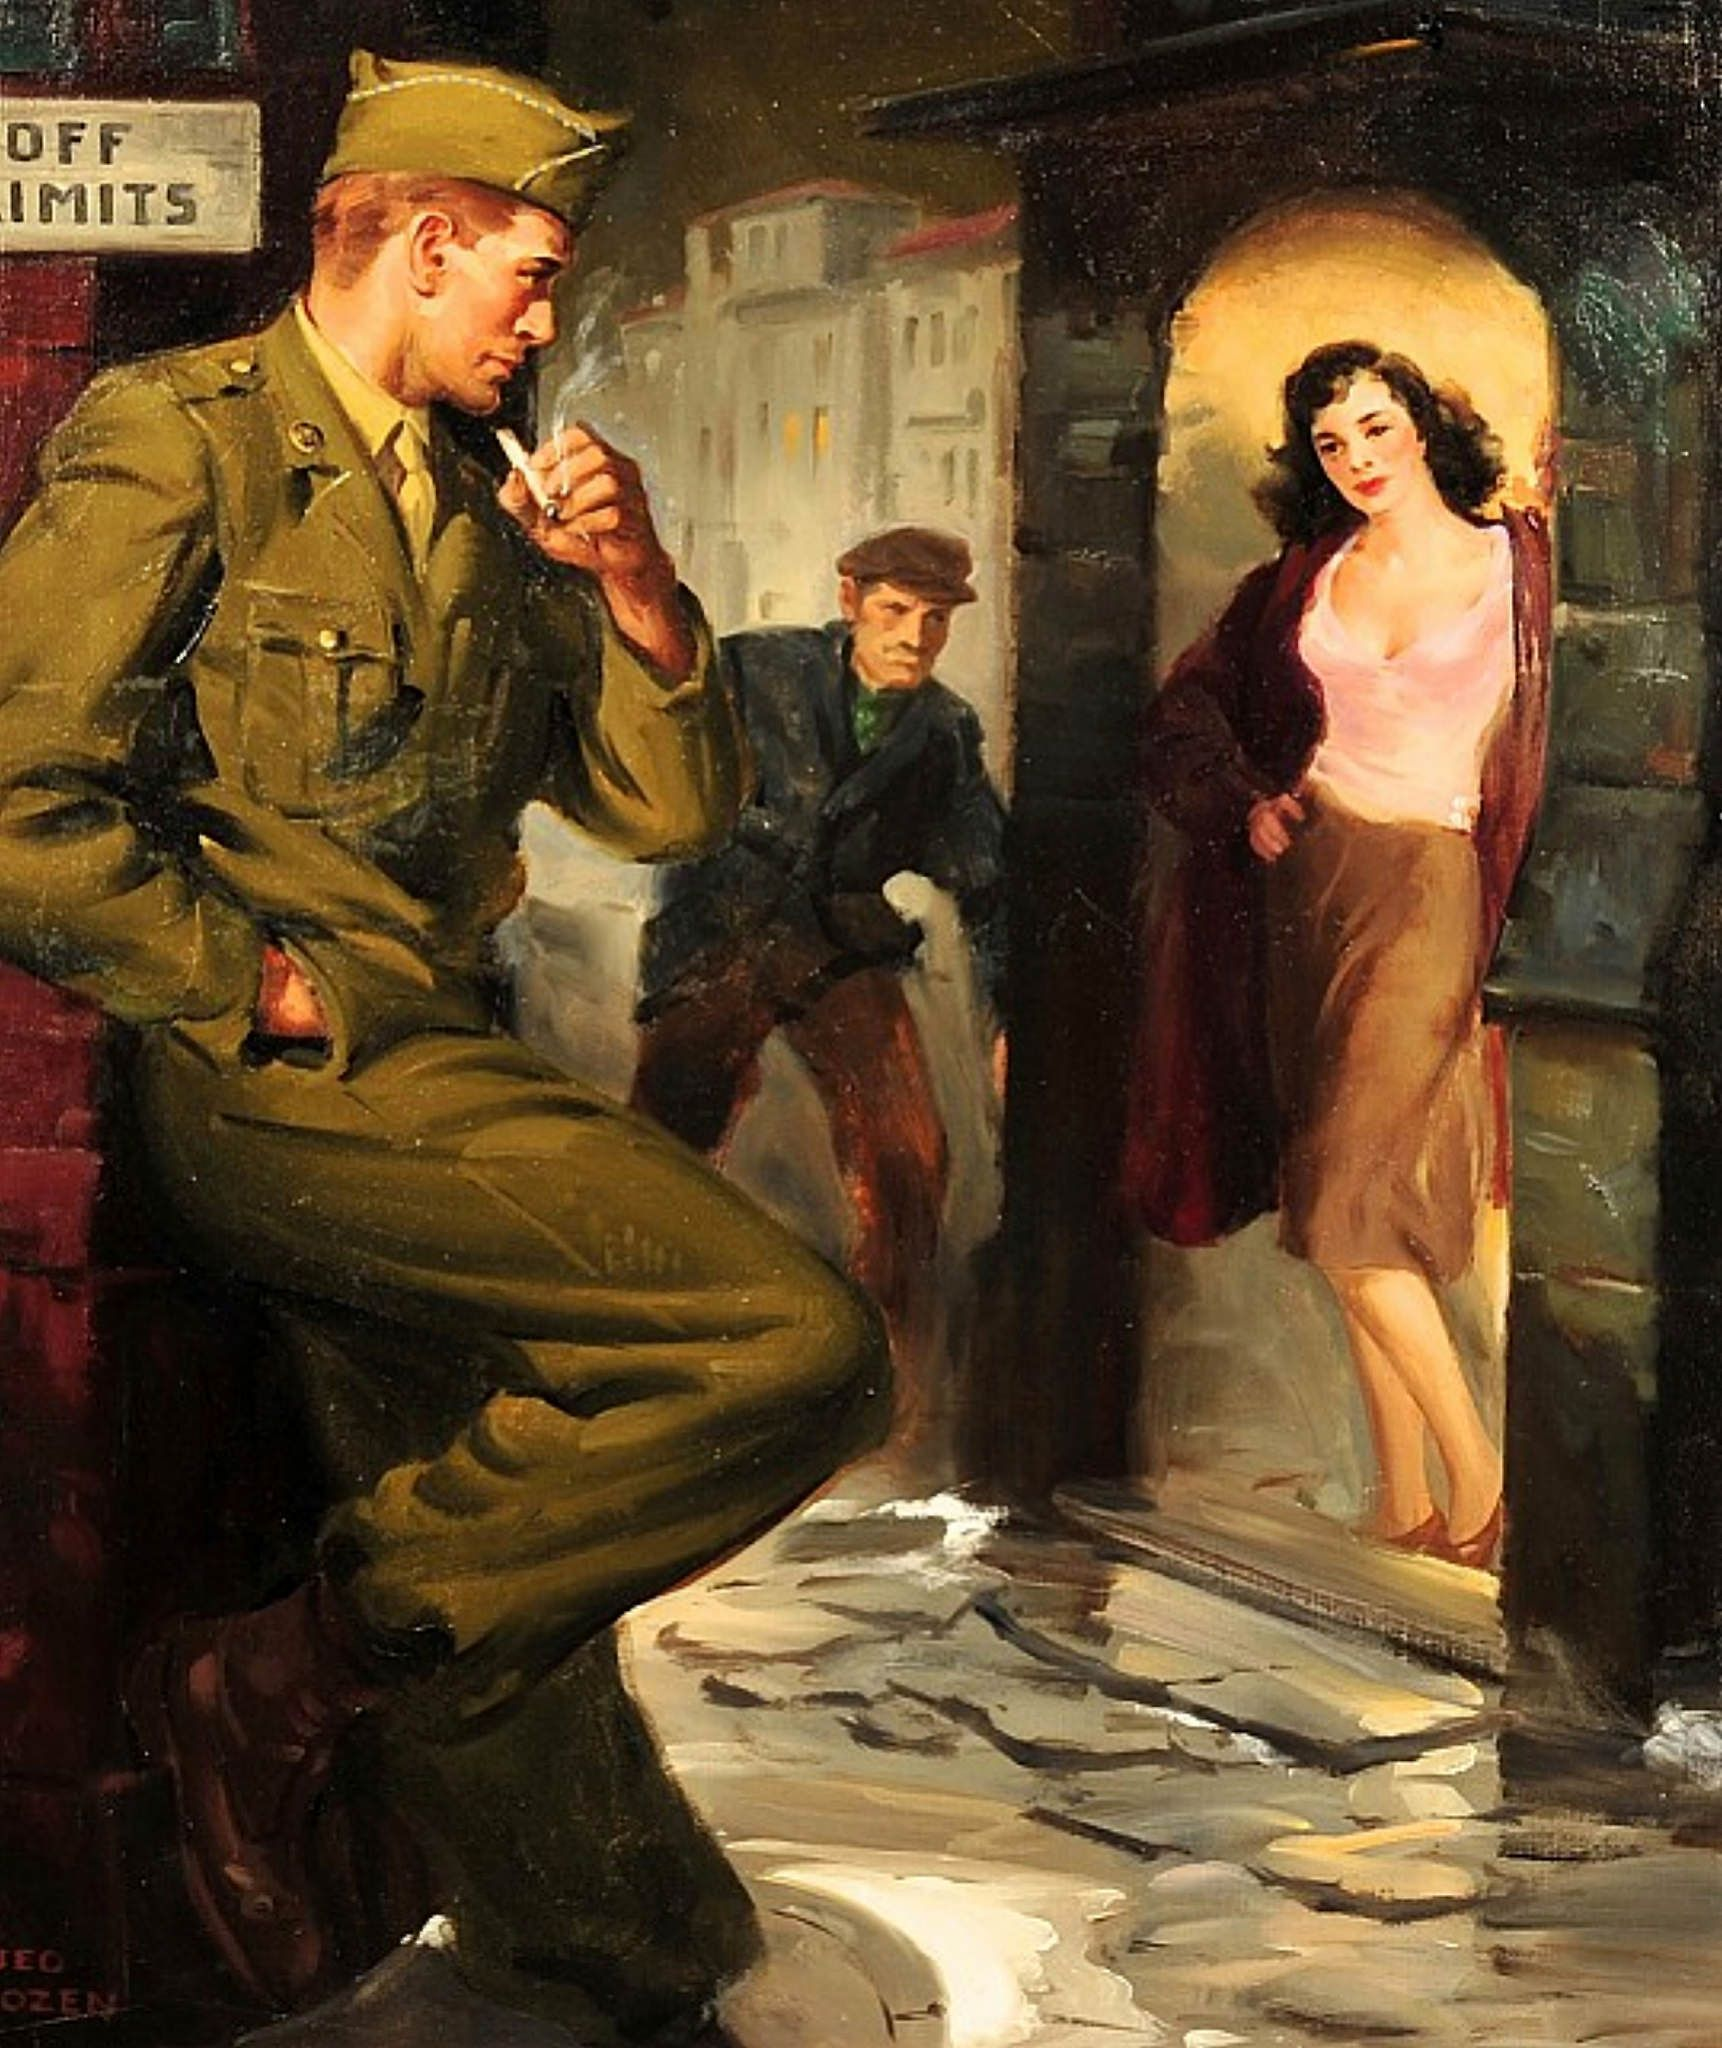 """Jerome Rozen - Even without that Off Limits sign, soldier boy should probably move on. The painting was on the cover of the paperback """"Casualty"""" by Robert Lowery."""